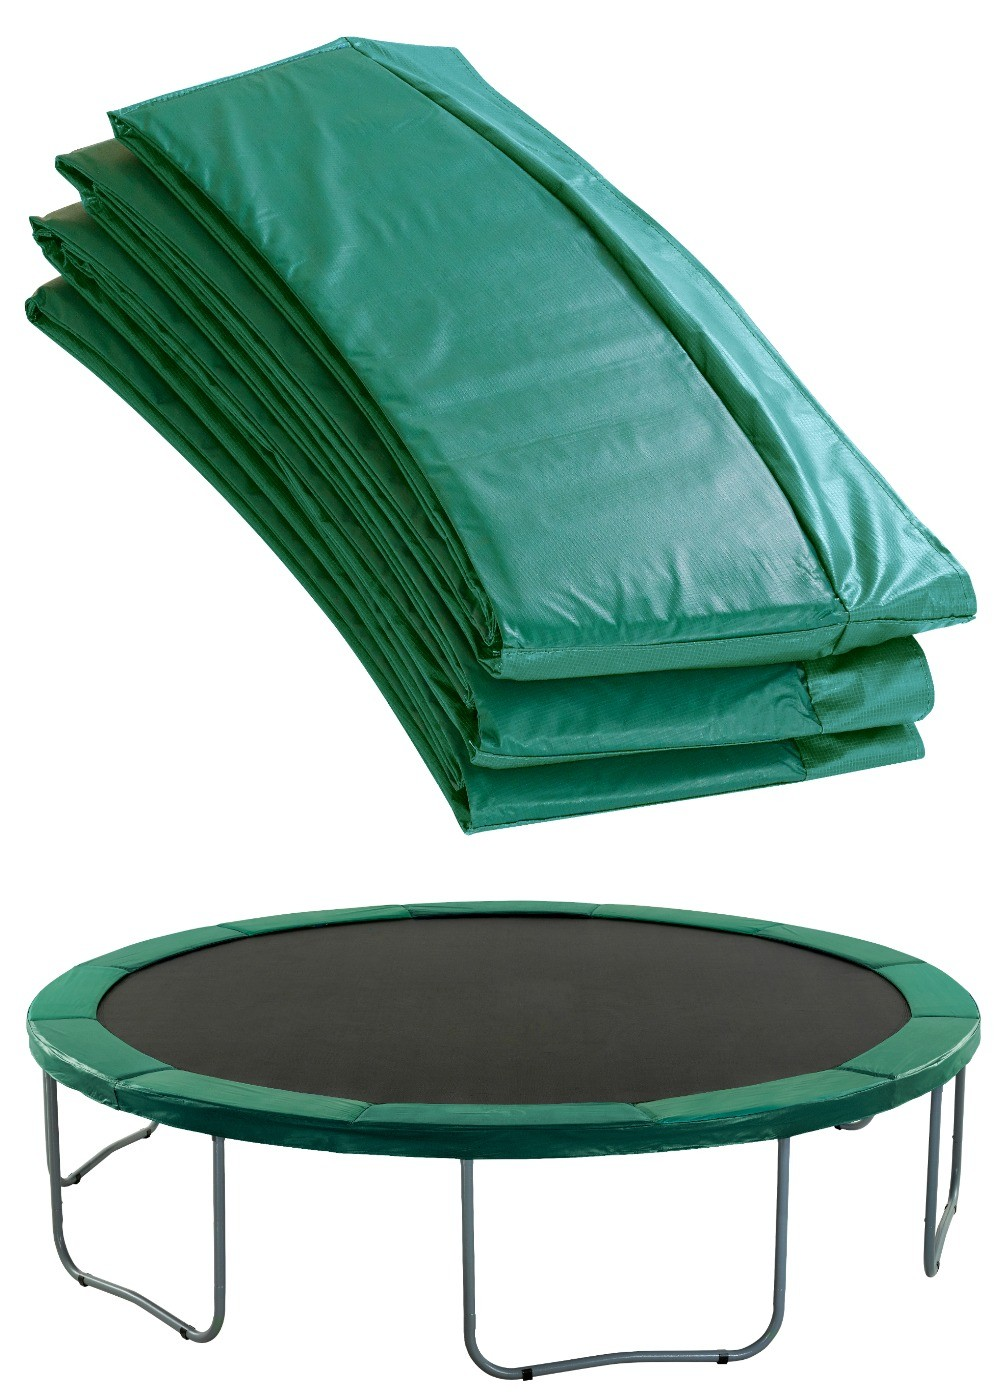 Premium Trampoline Replacement Safety Pad (Spring Cover) | Padding for 396cm 13ft Trampoline | Green